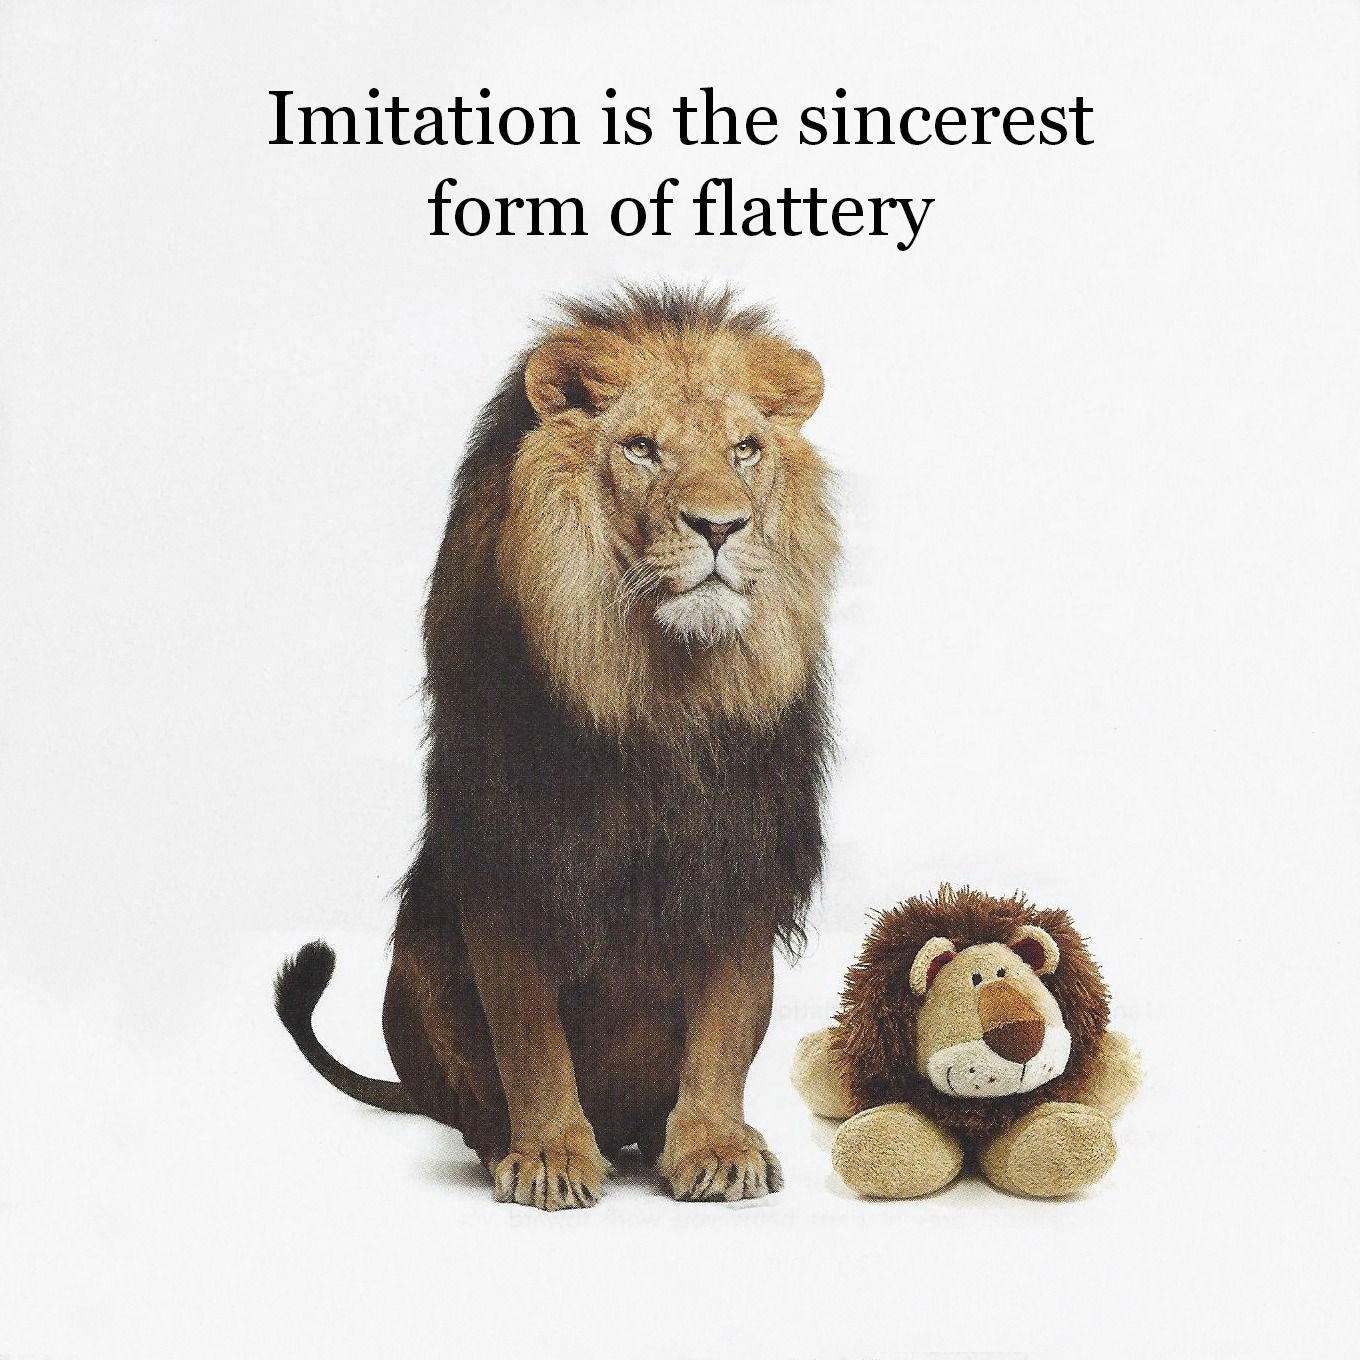 imitation is the sincerest form of flattery - Google Search | LiFe ...